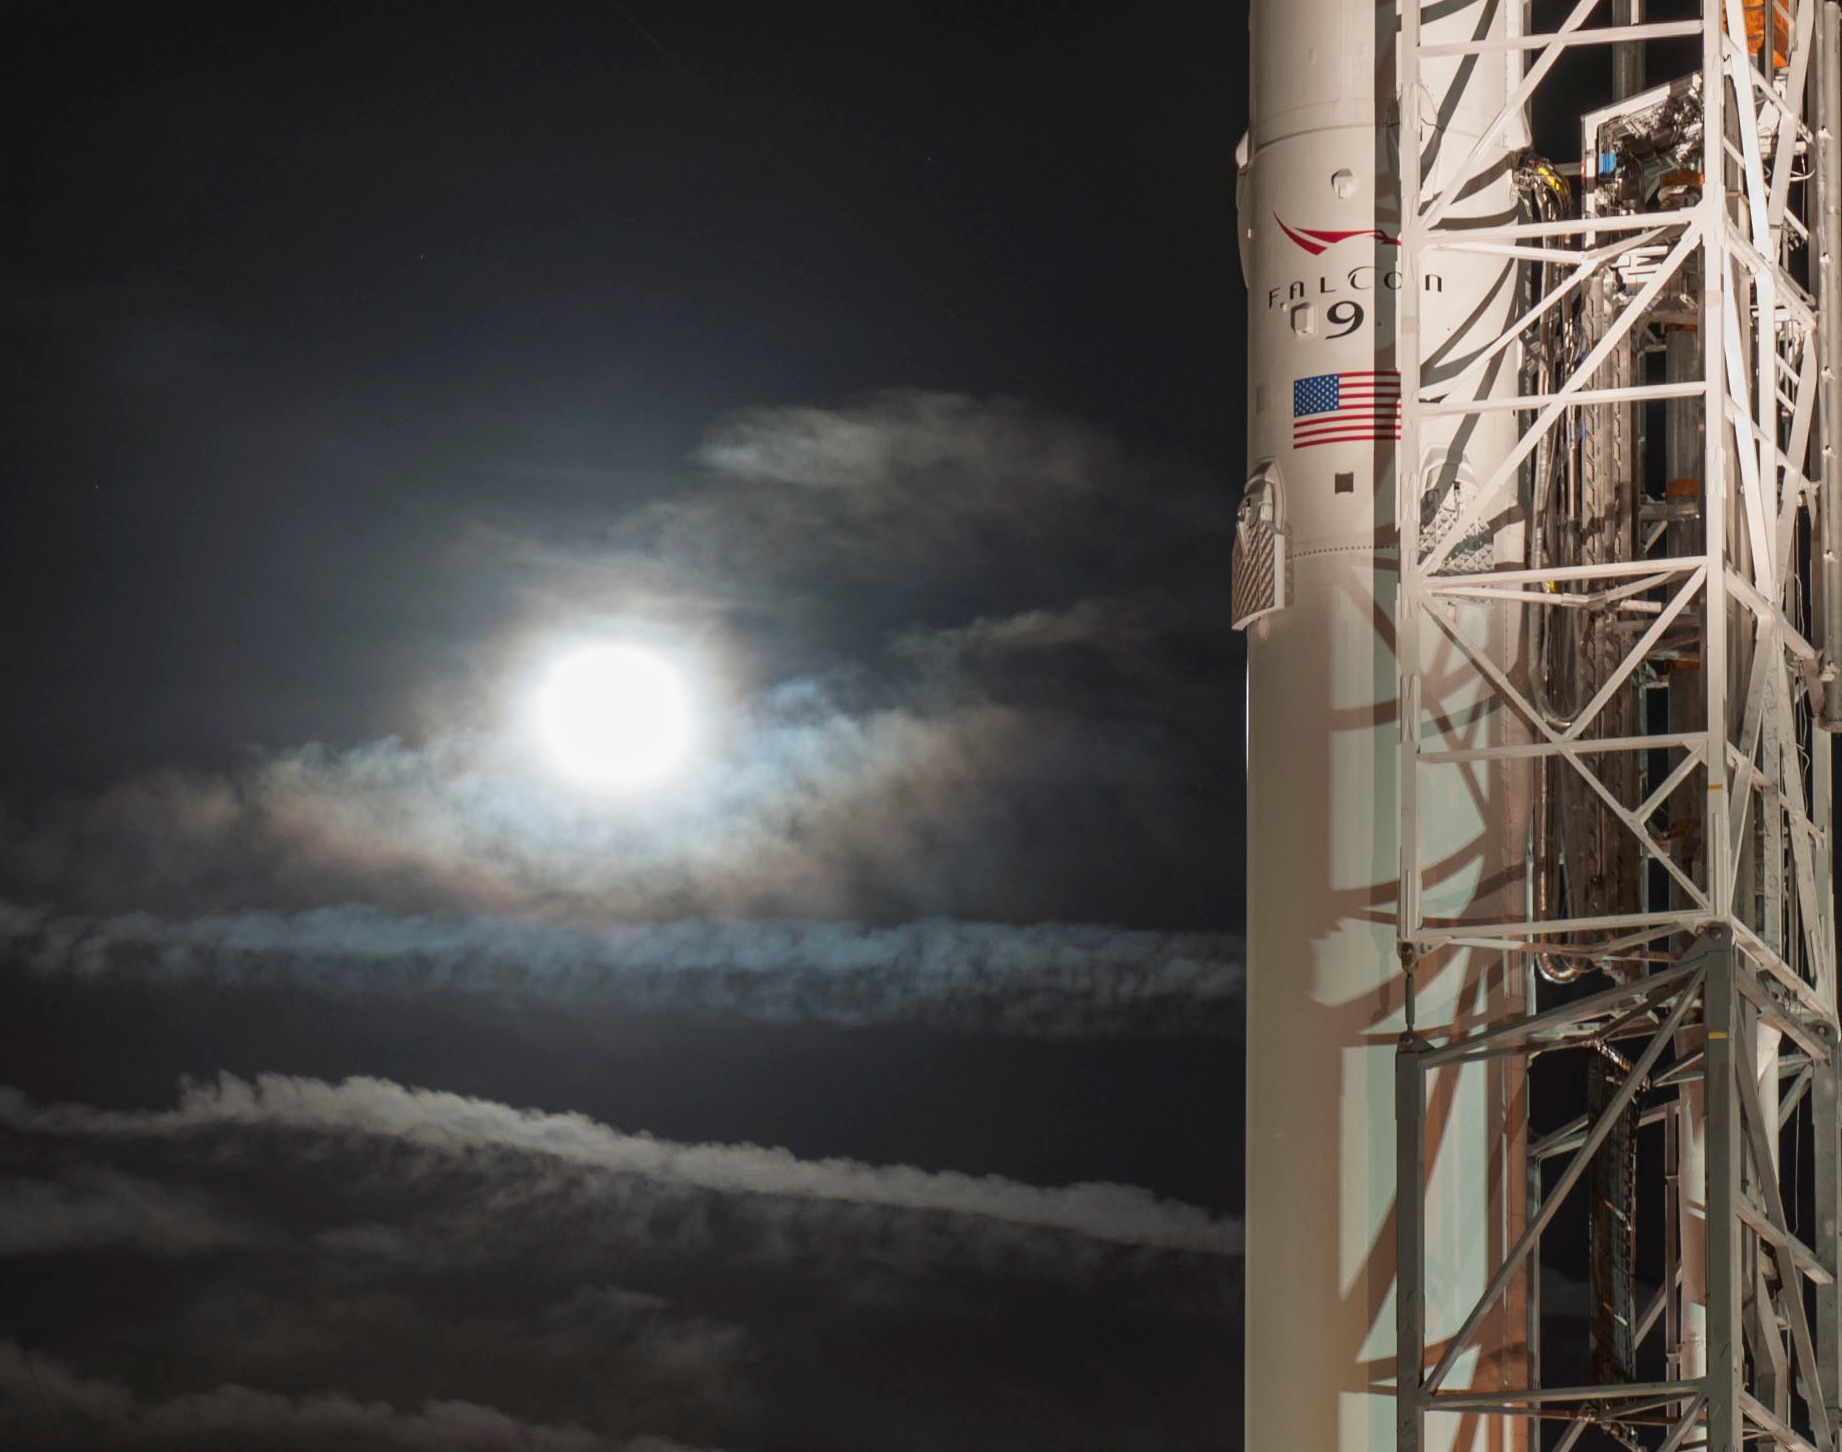 CRS-5 moon (SpaceX)